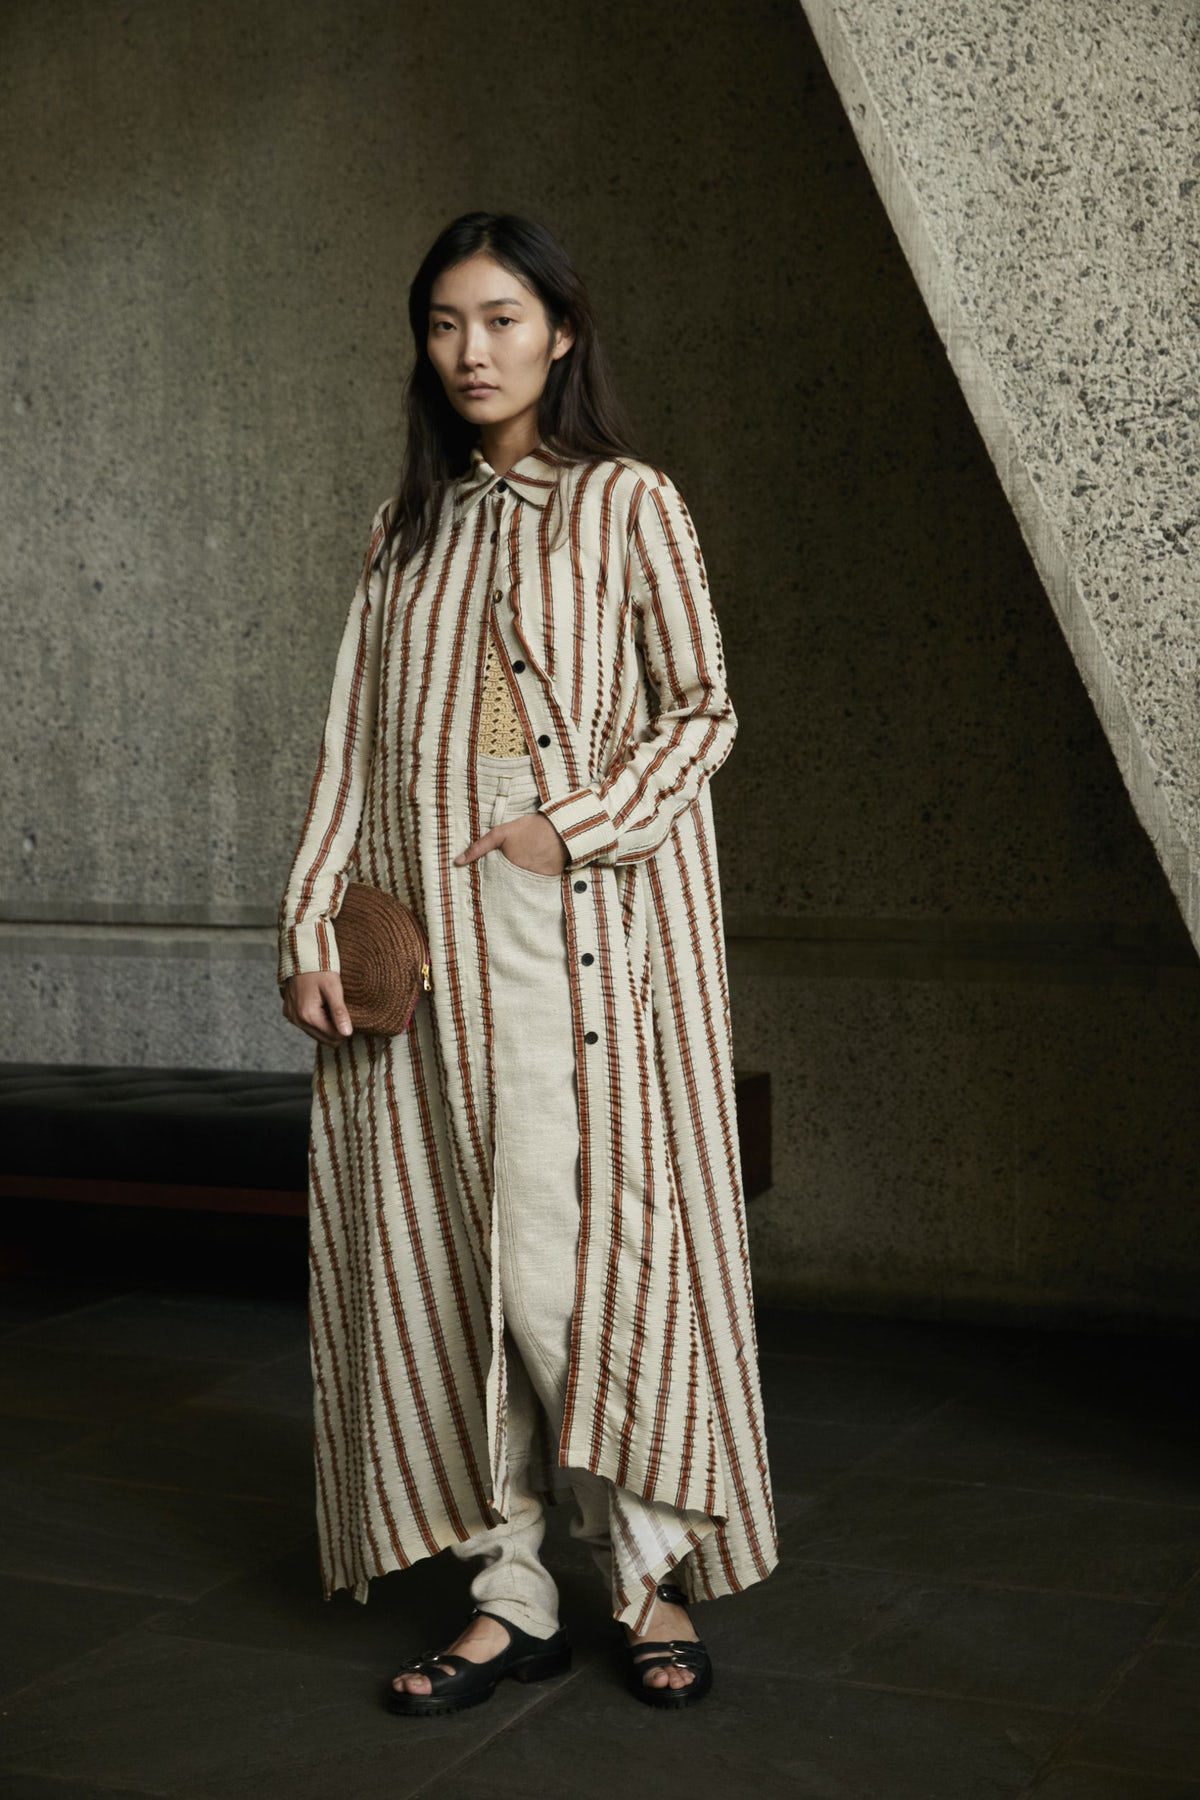 MODEST FASHION AS A VIRTUE     THE FASHION FUTURIST Rachel Comey Spring 2018  image via The Business Of Fashion